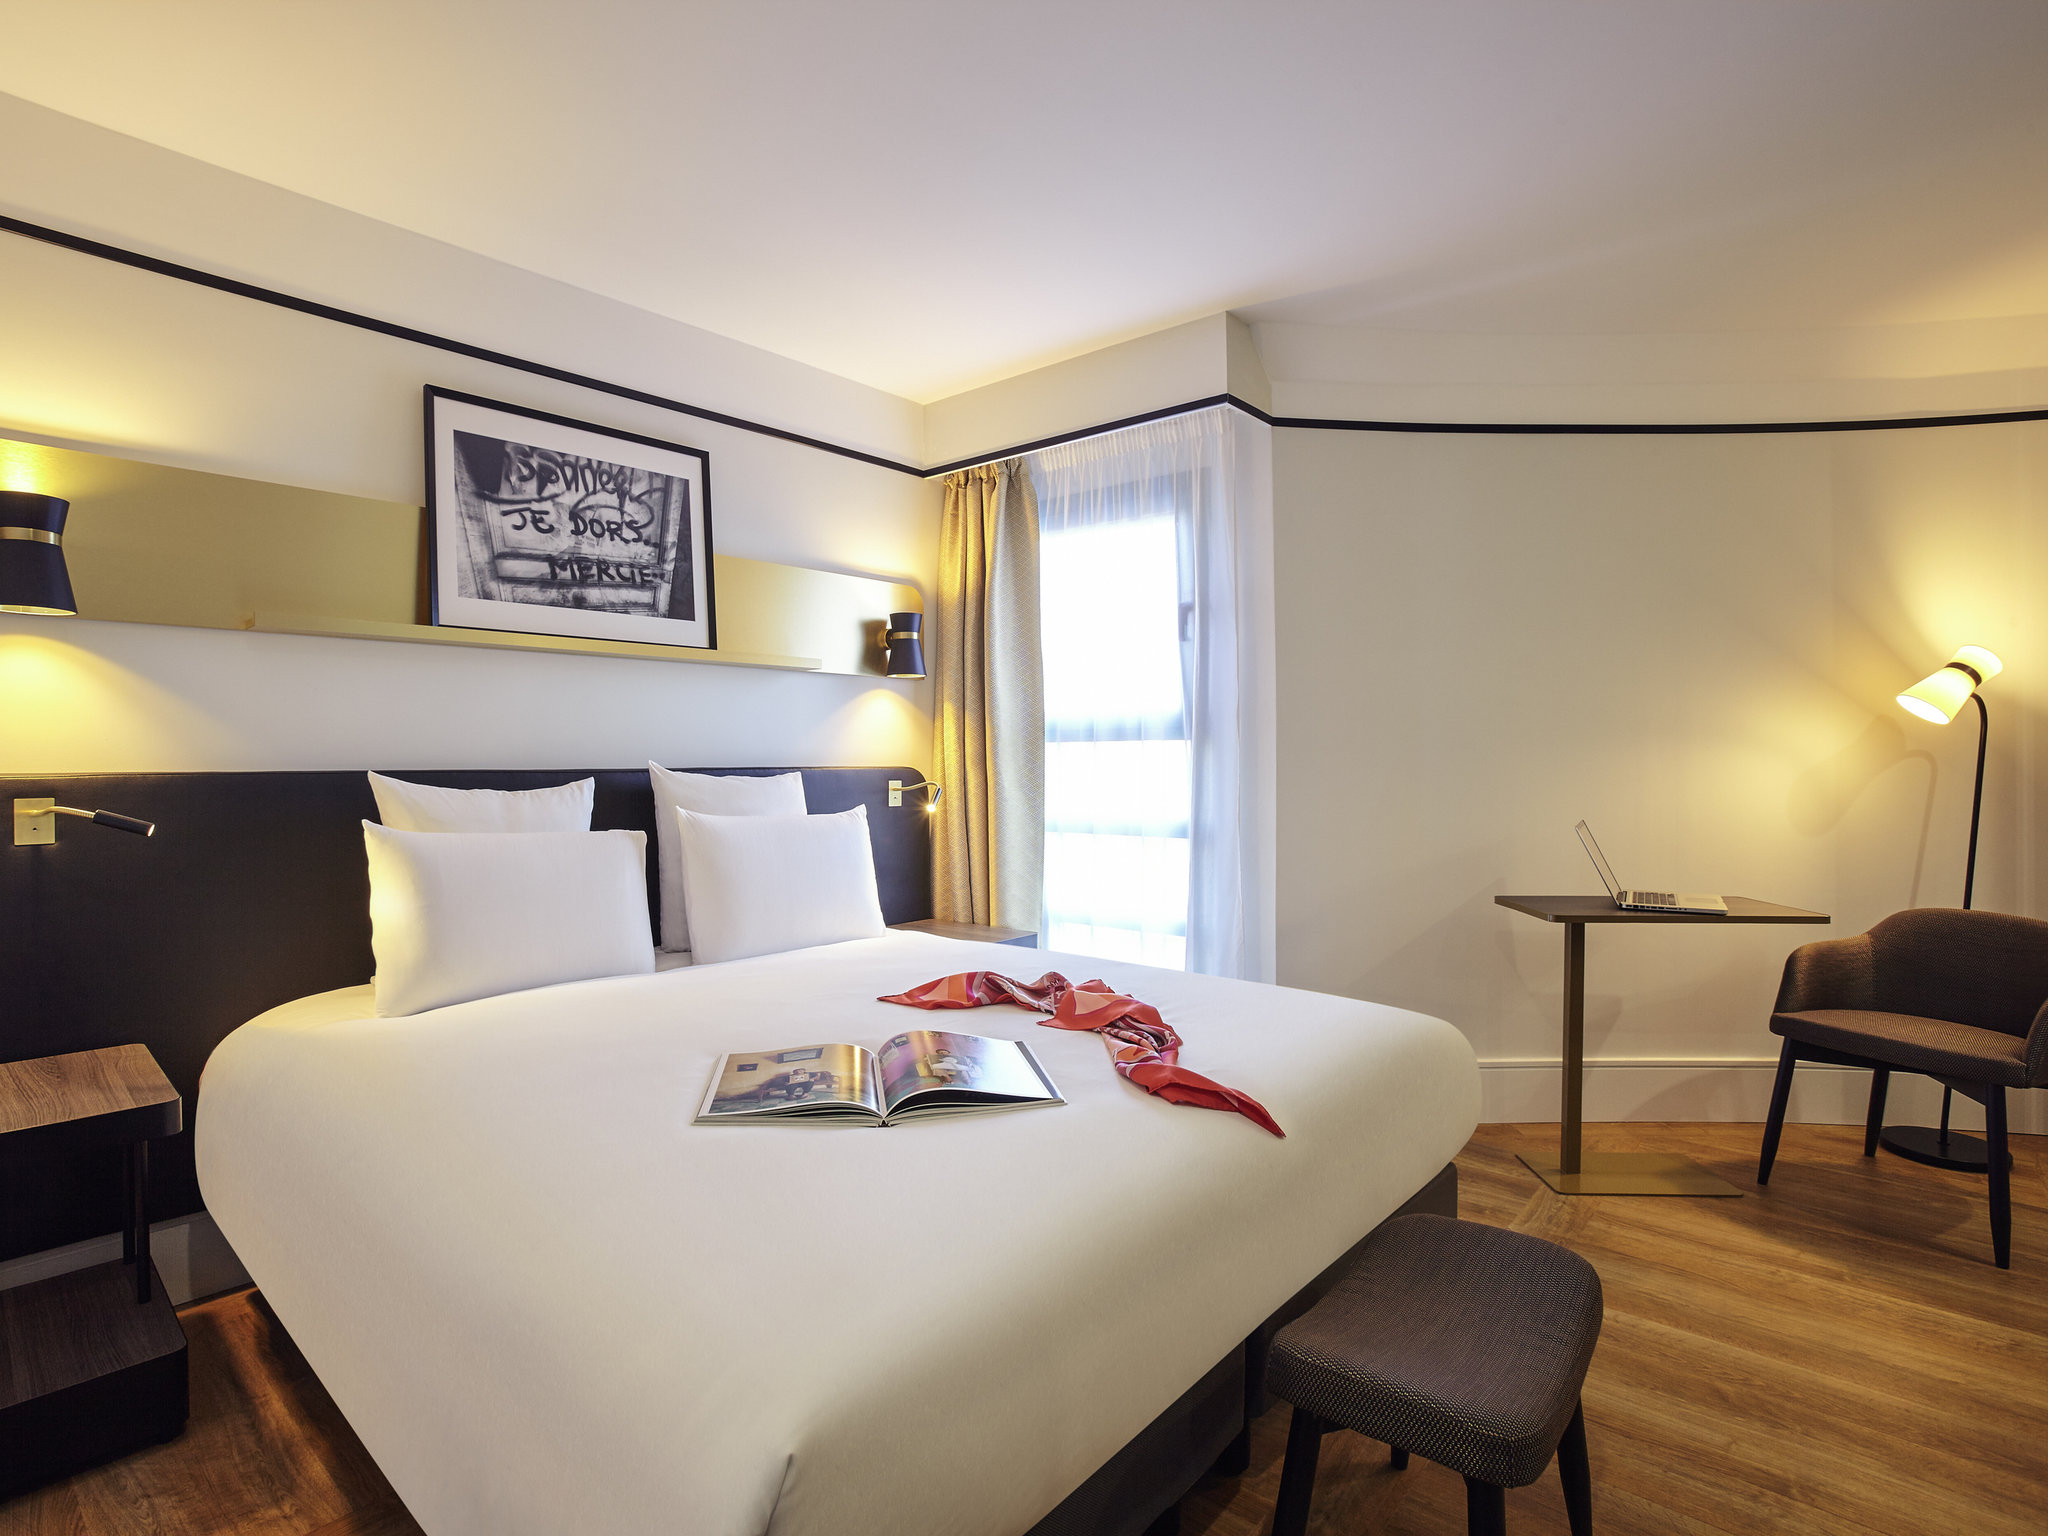 Hotel - Mercure Paris Saint-Ouen (formerly Manhattan)